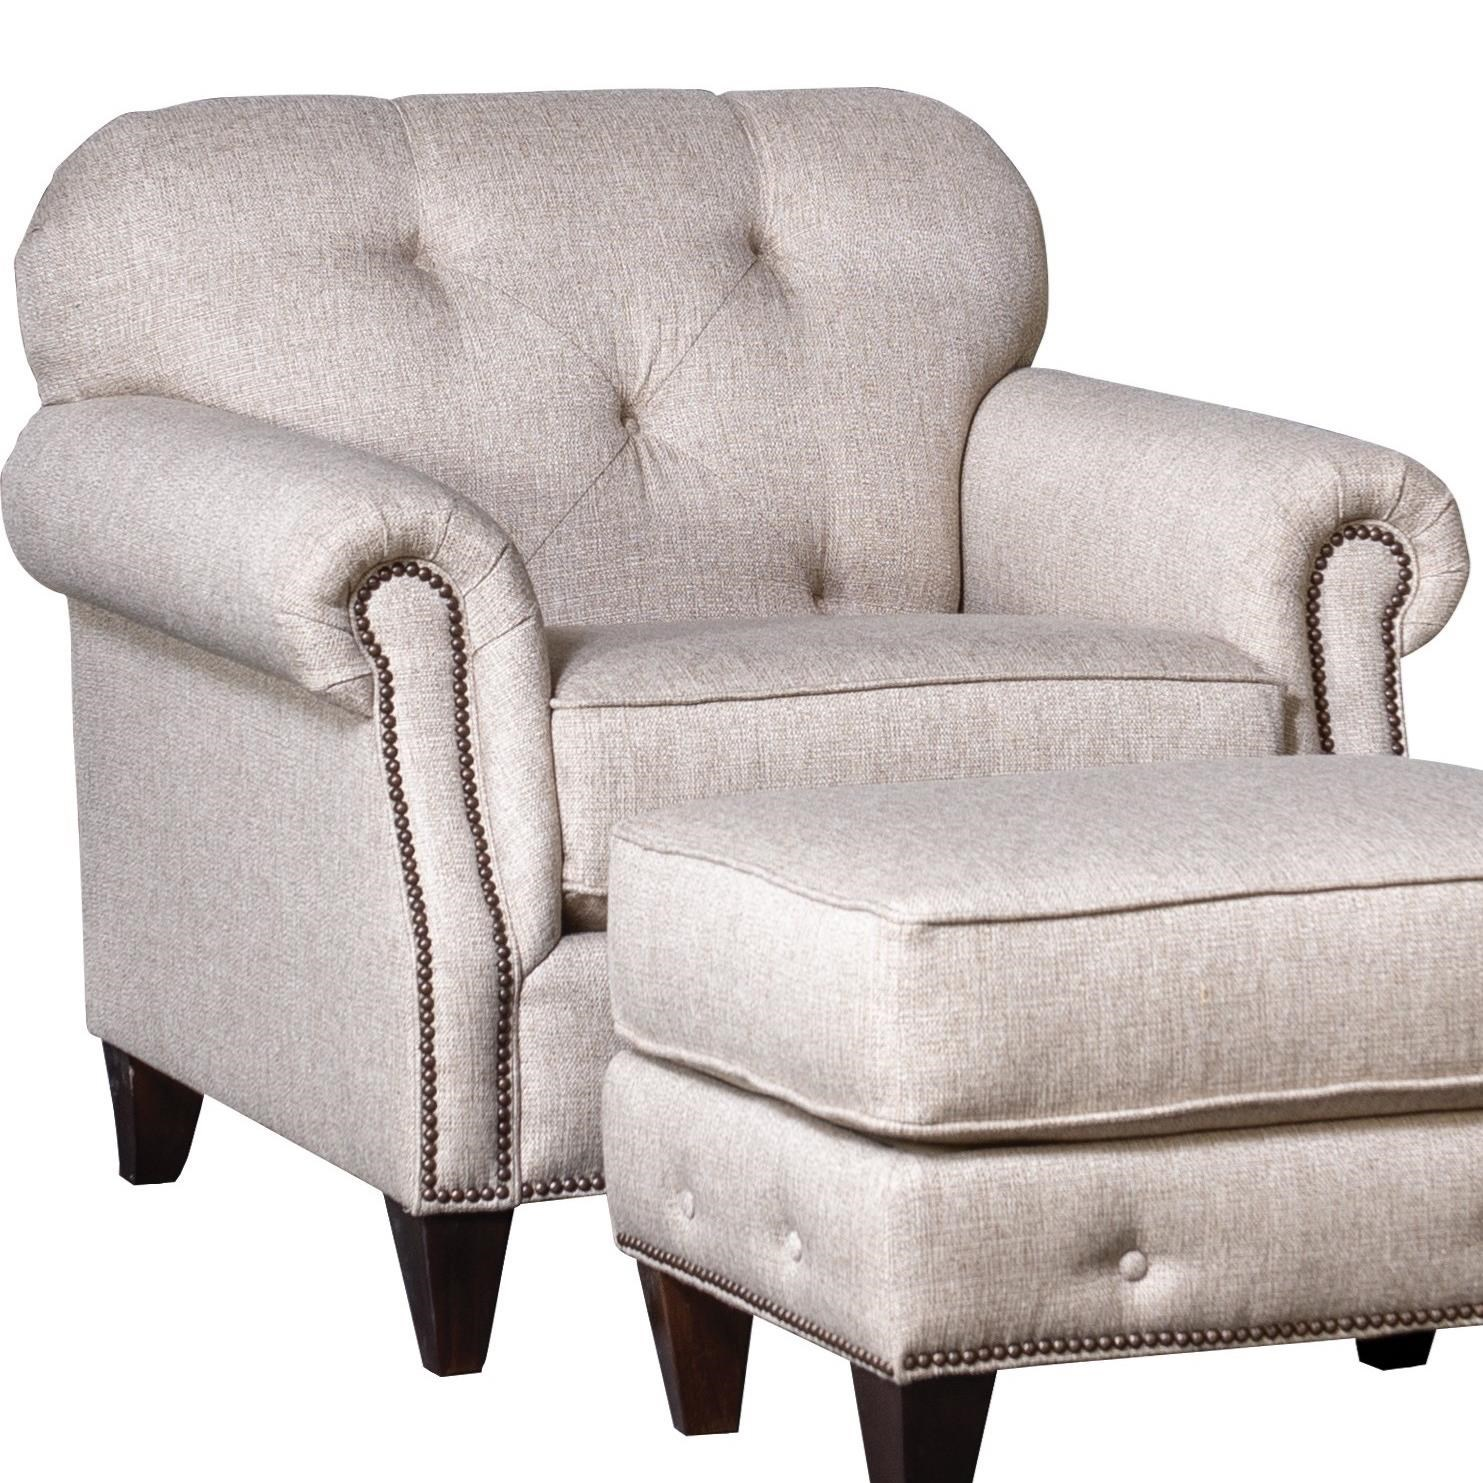 2262 Chair by Mayo at Wilson's Furniture